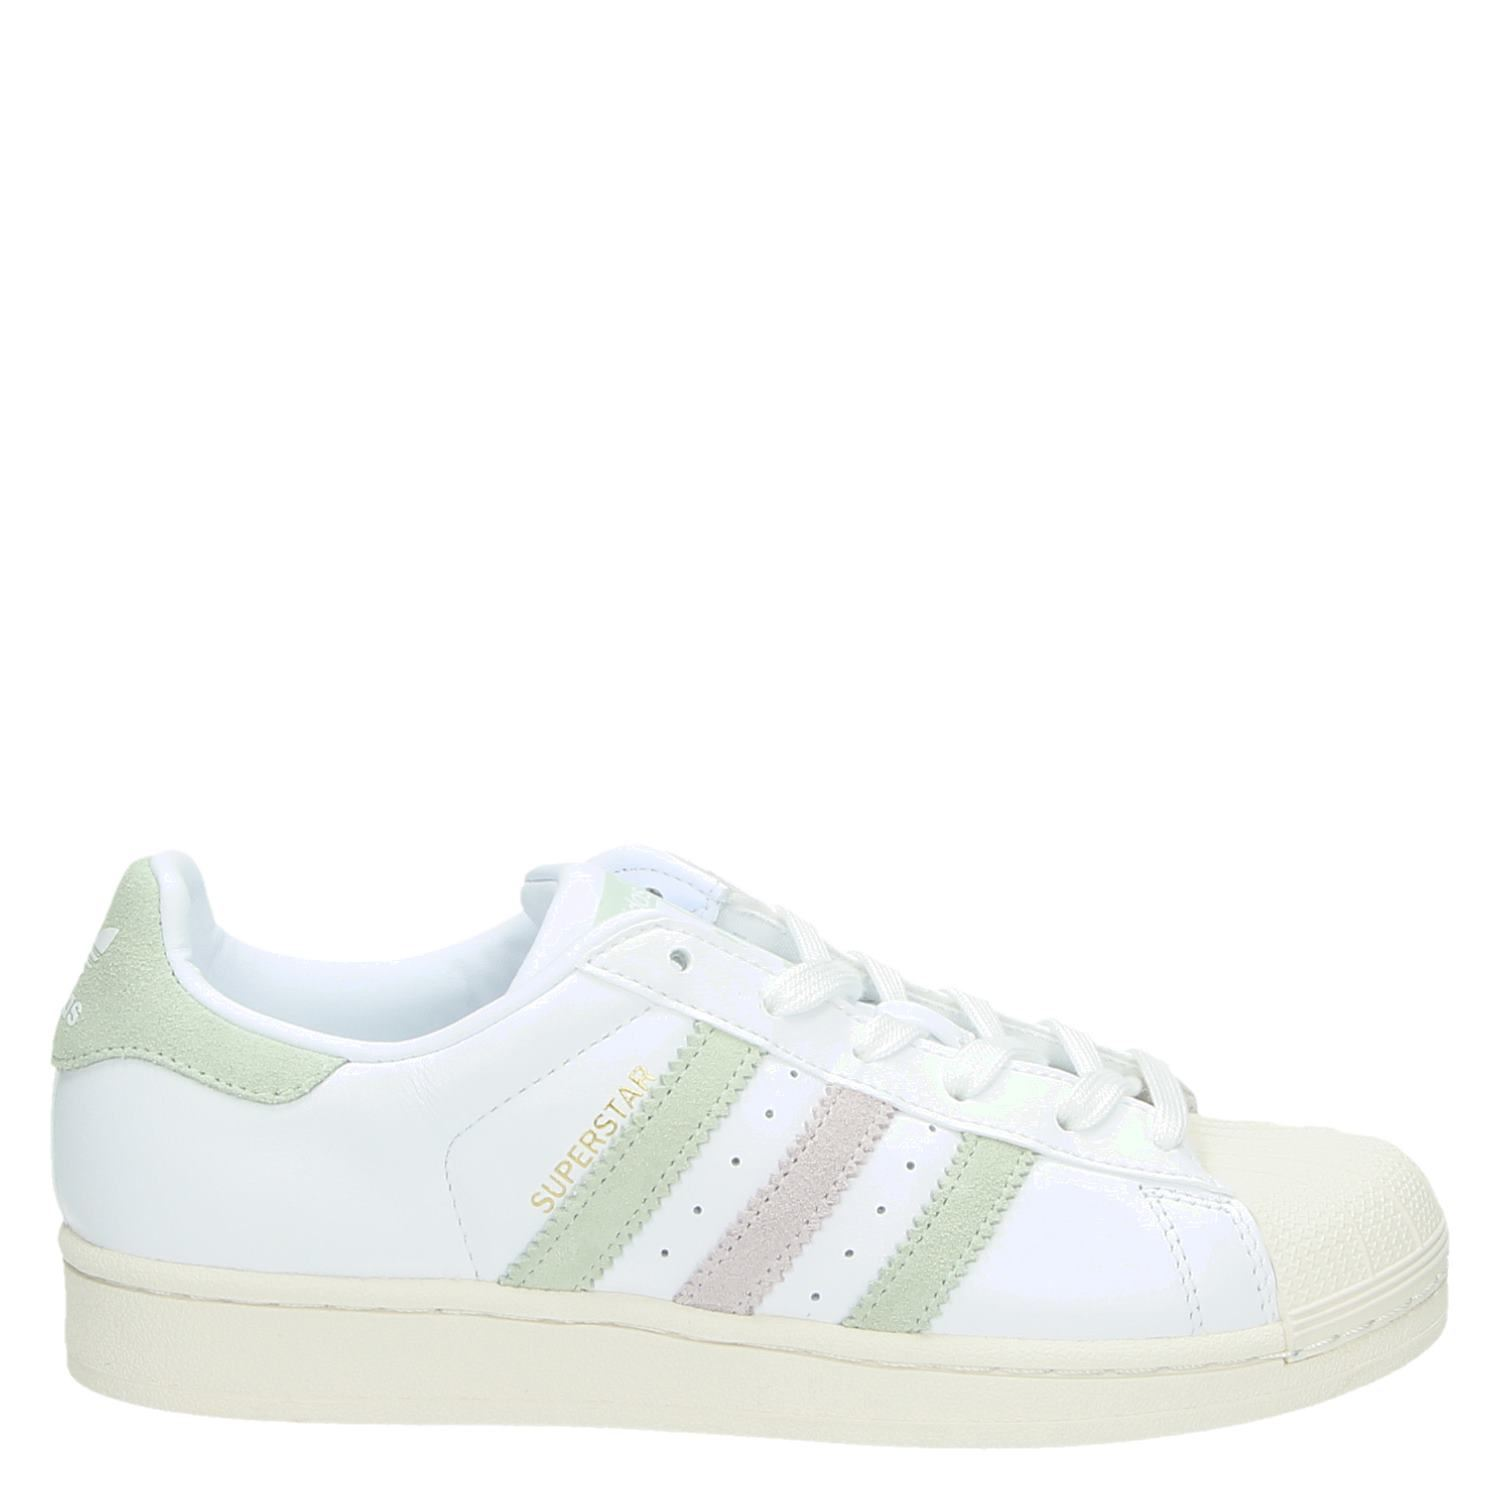 6cdc26e8c98 Adidas Superstar dames sneakers wit